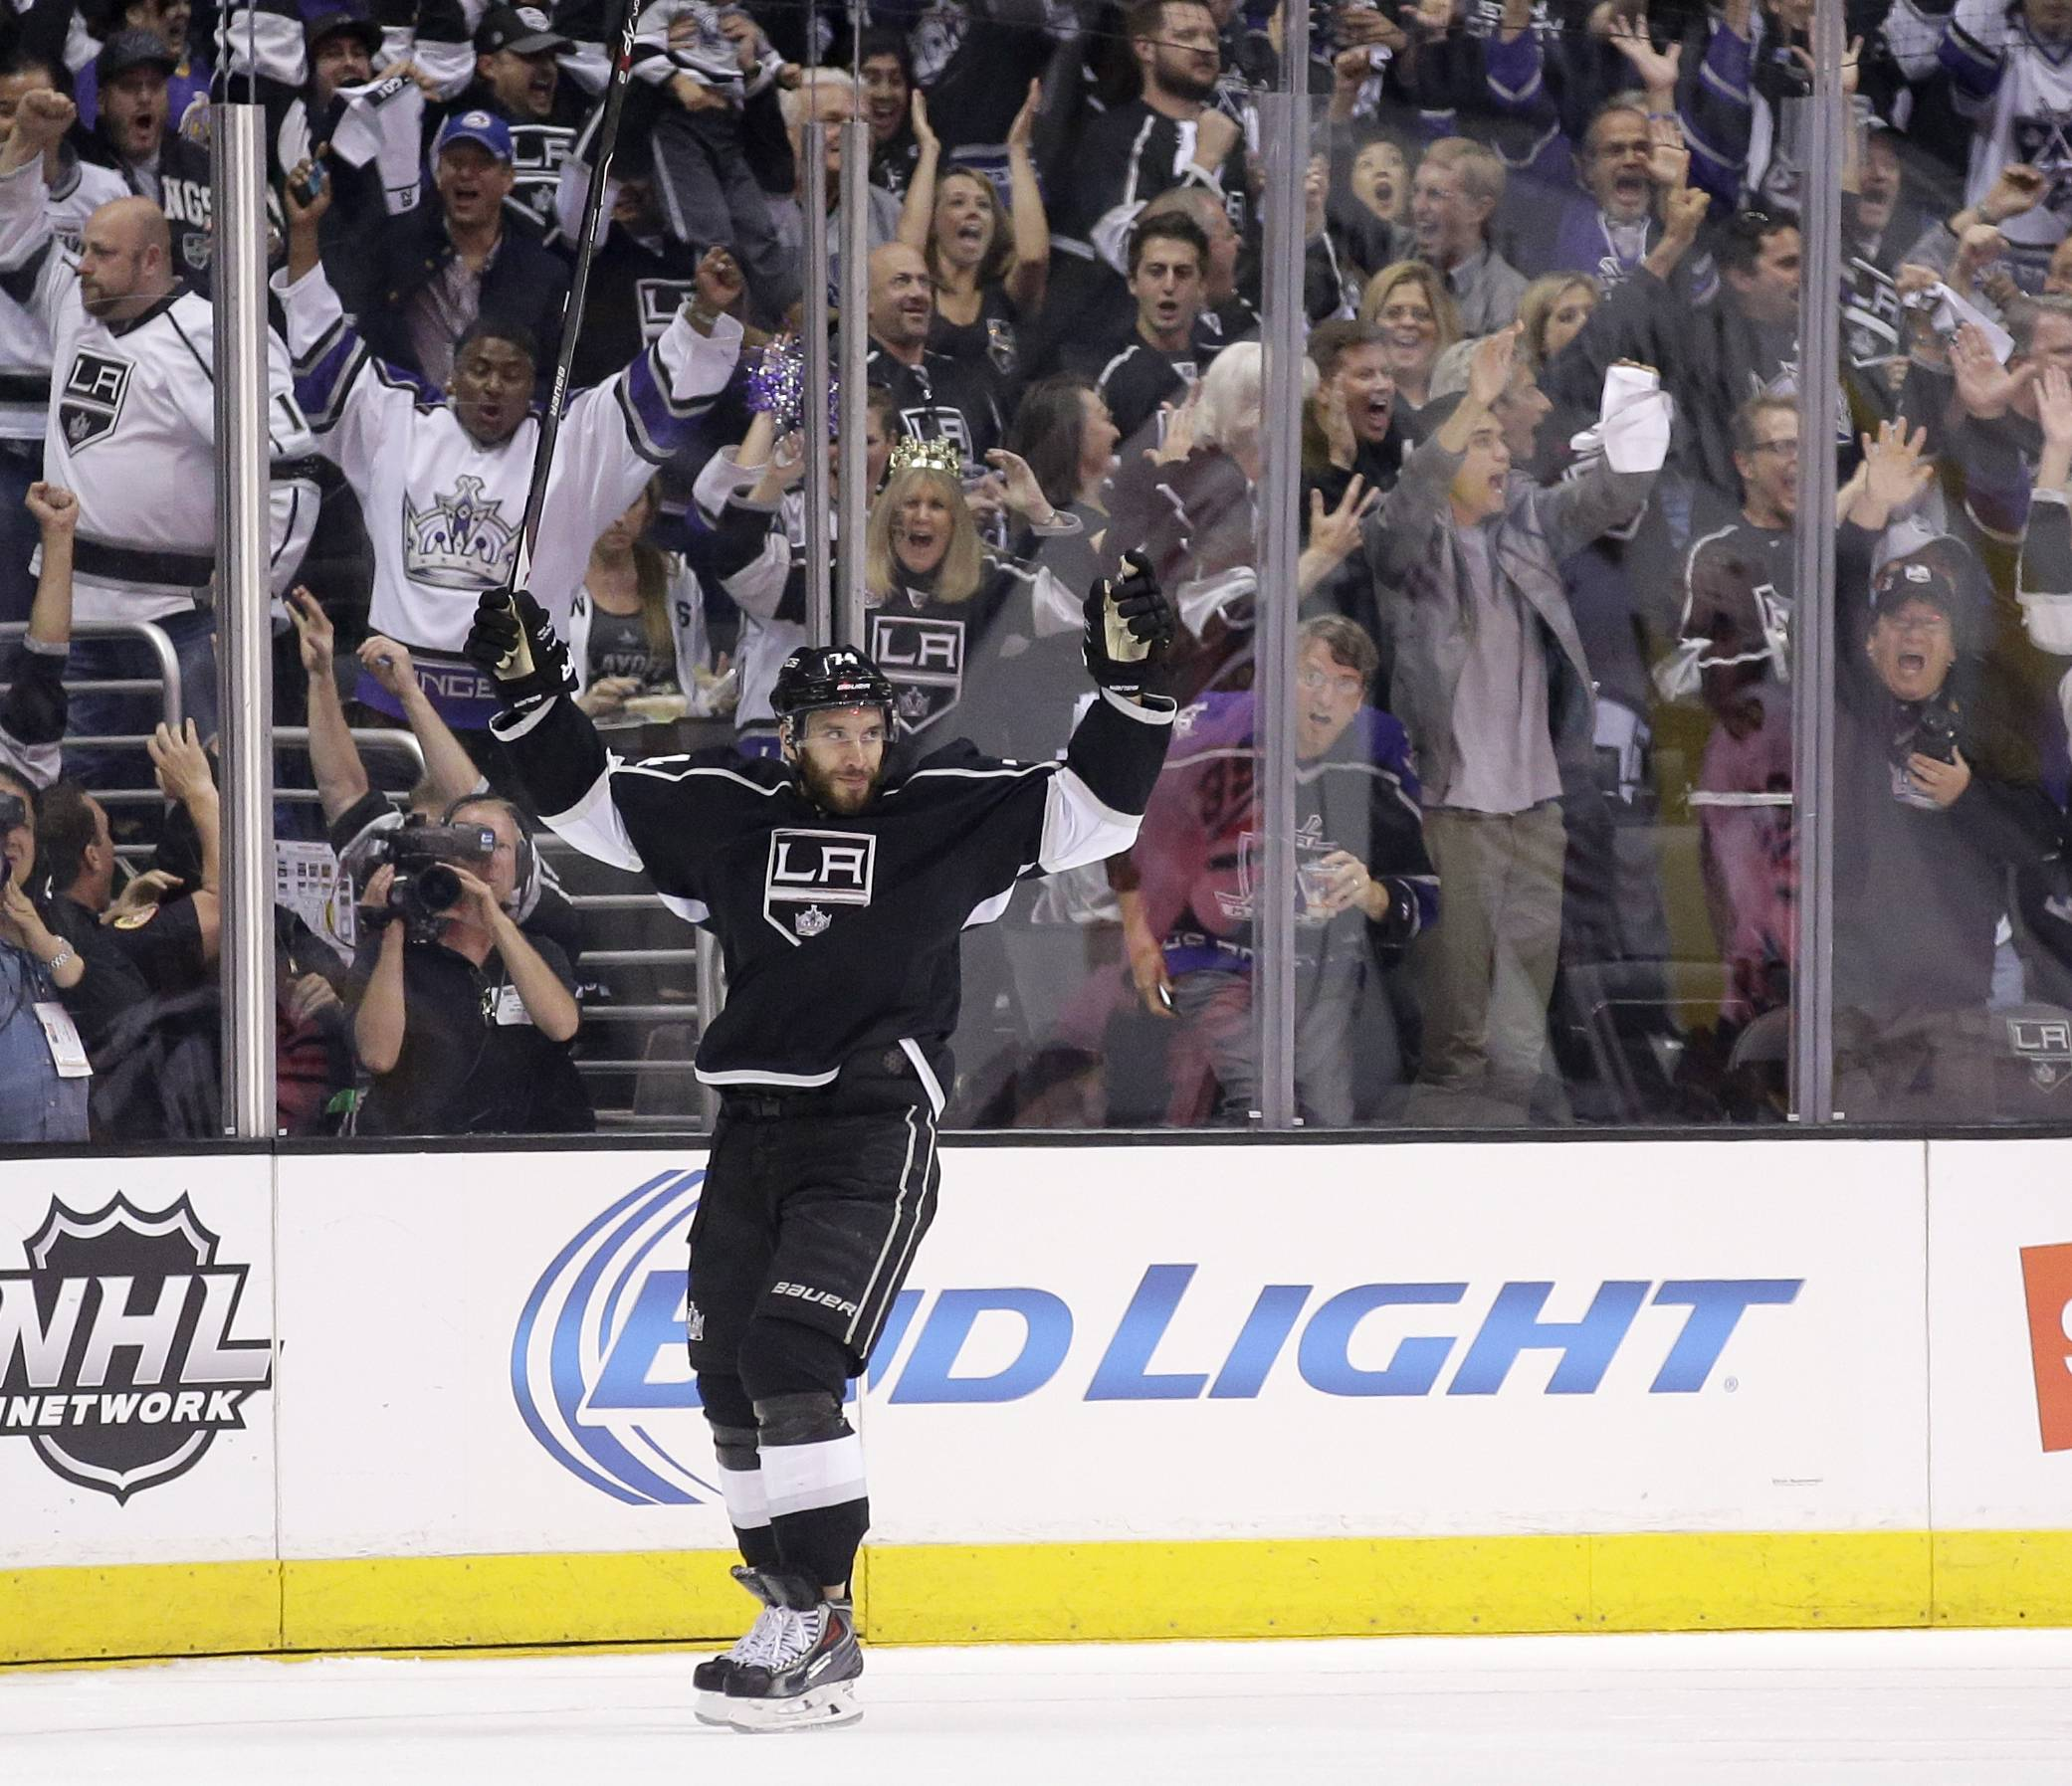 Los Angeles Kings left wing Dwight King celebrates his goal against the Chicago Blackhaw during first period of Game 6 of the Western Conference finals of the NHL hockey Stanley Cup playoffs in Los Angeles on Friday, May 30, 2014. (AP Photo/Chris Carlson)